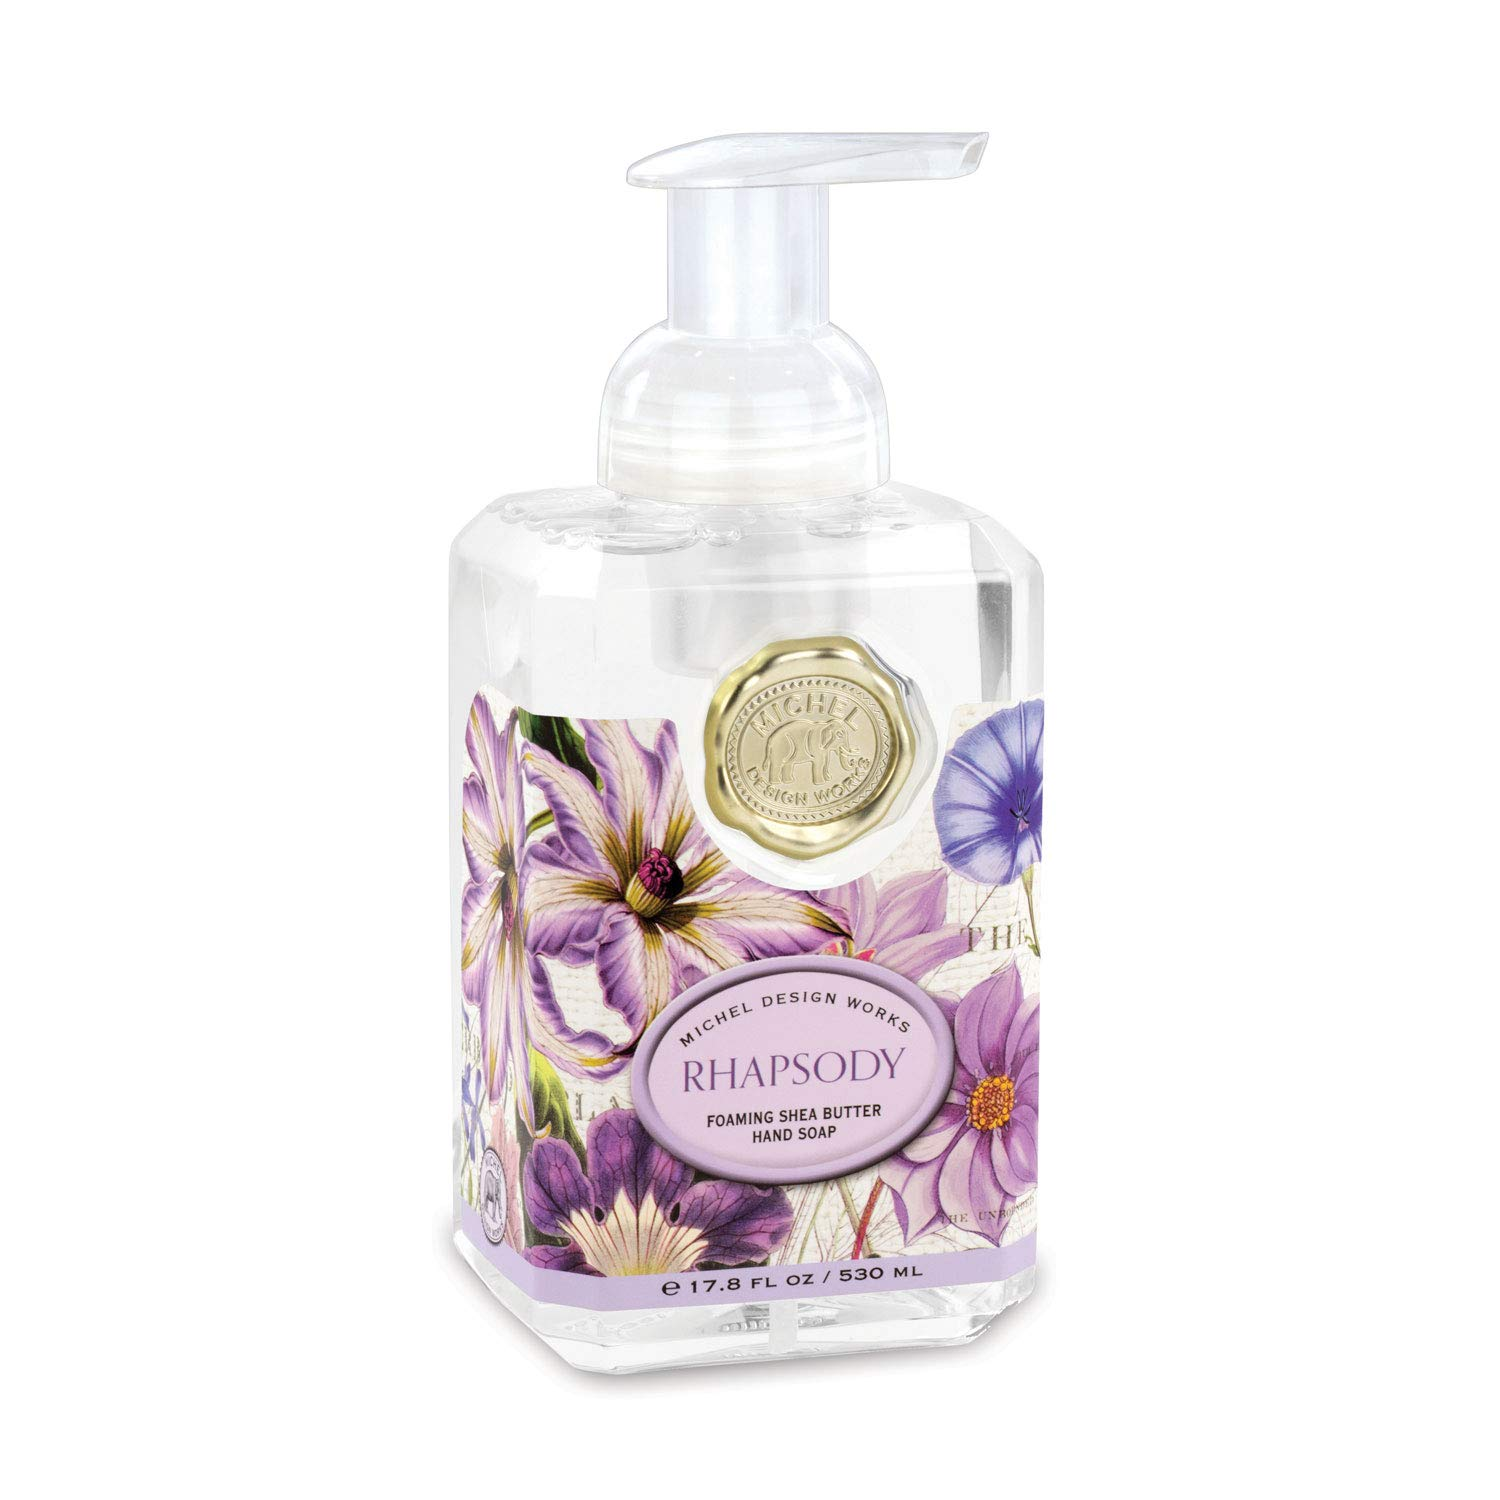 Michel Design Works Rhapsody Foaming Soap Buy Online In China Missing Category Value Products In China See Prices Reviews And Free Delivery Over 500 Desertcart,Acrylic Nail Designs Natural Colors